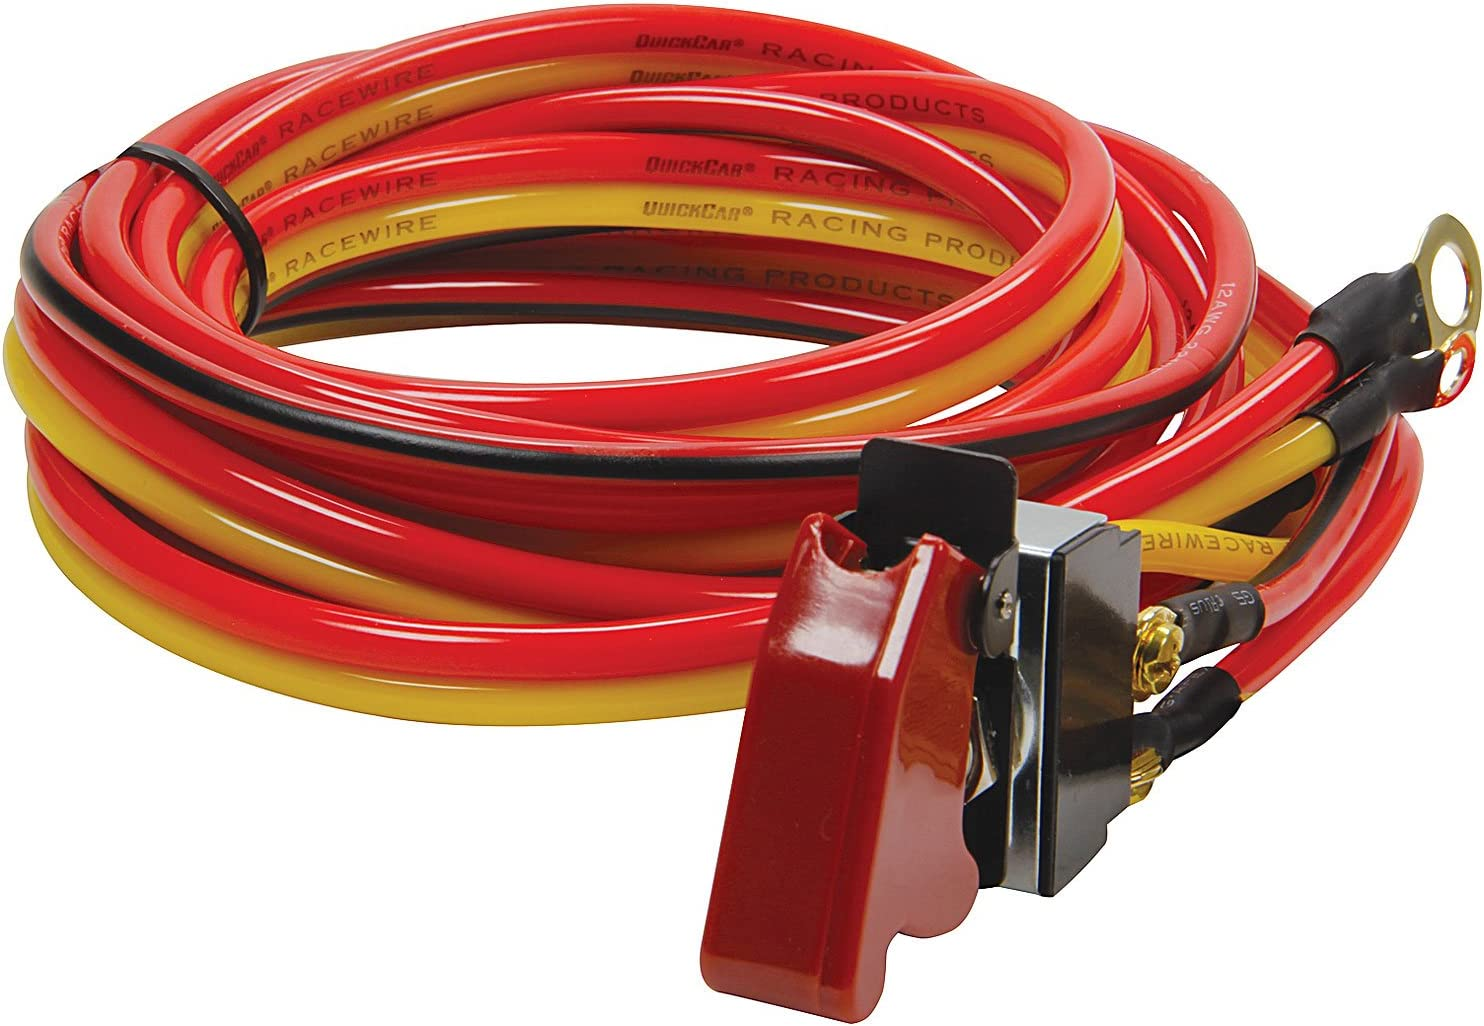 Quickcar Racing Products 50-507 Ignition//Start Switch with Wiring Harness